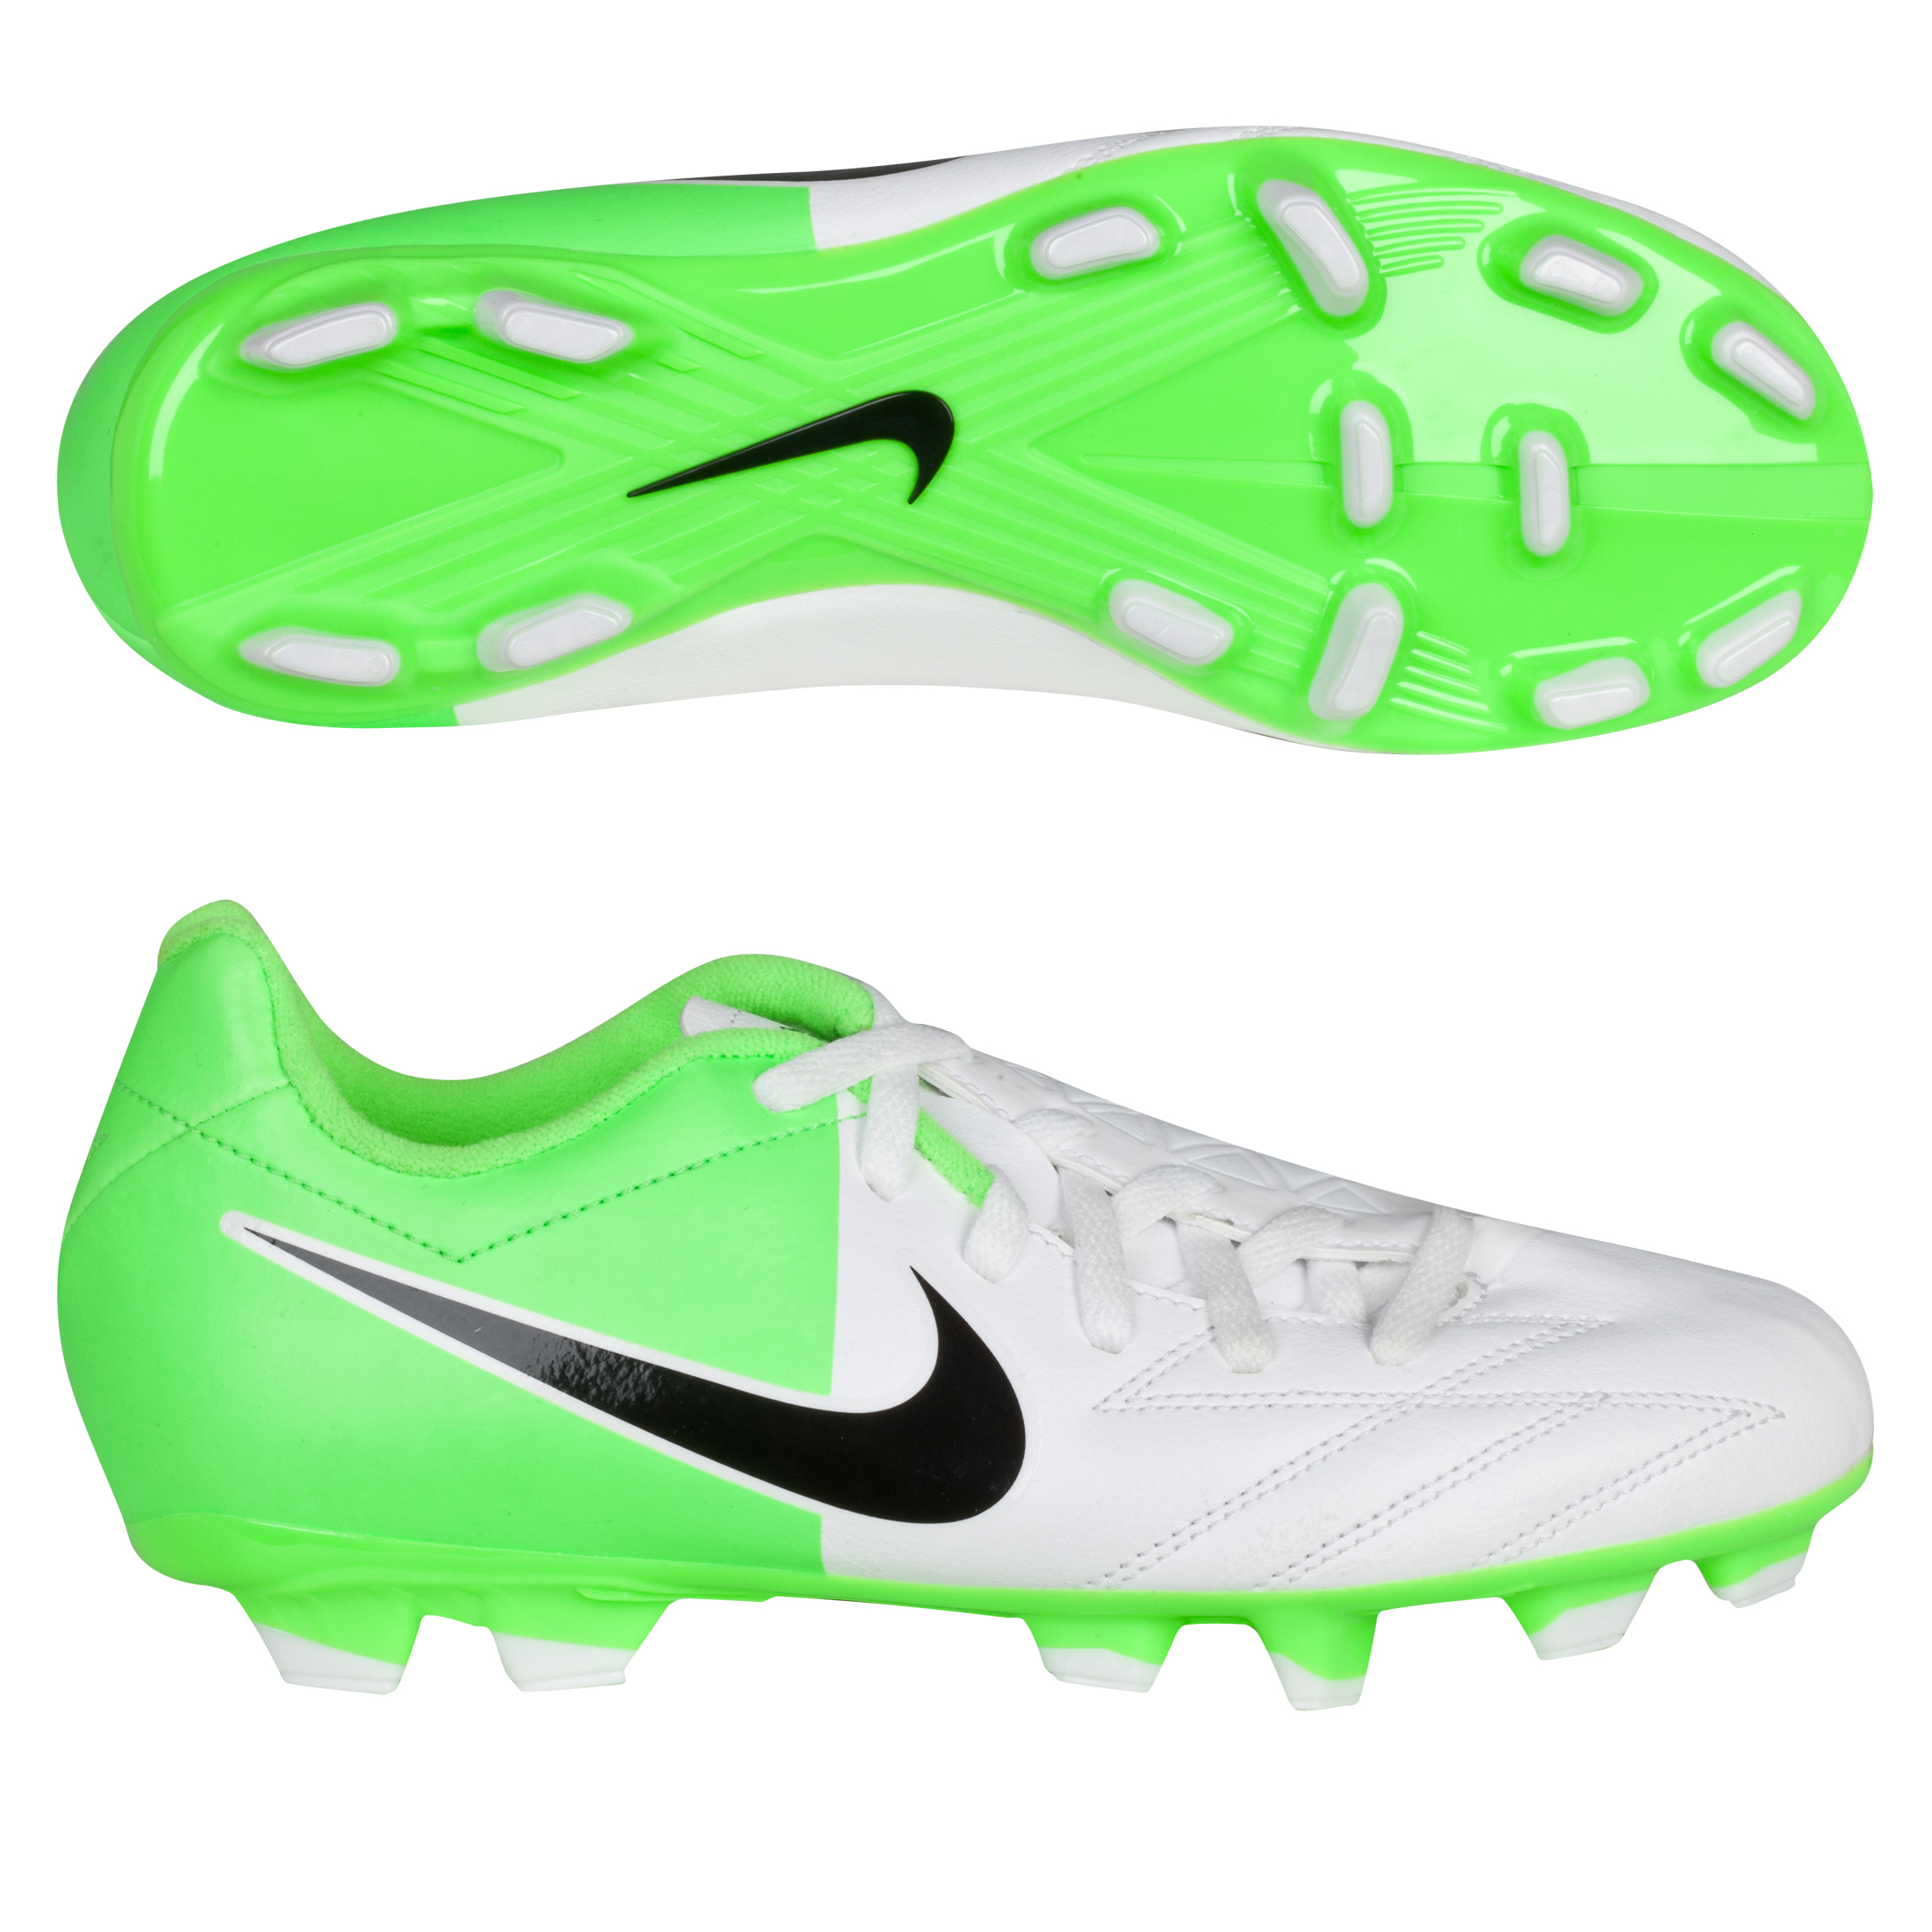 Nike Total90 Shoot Iv Firm Ground Football Boots - White/black/electric Green - Kids